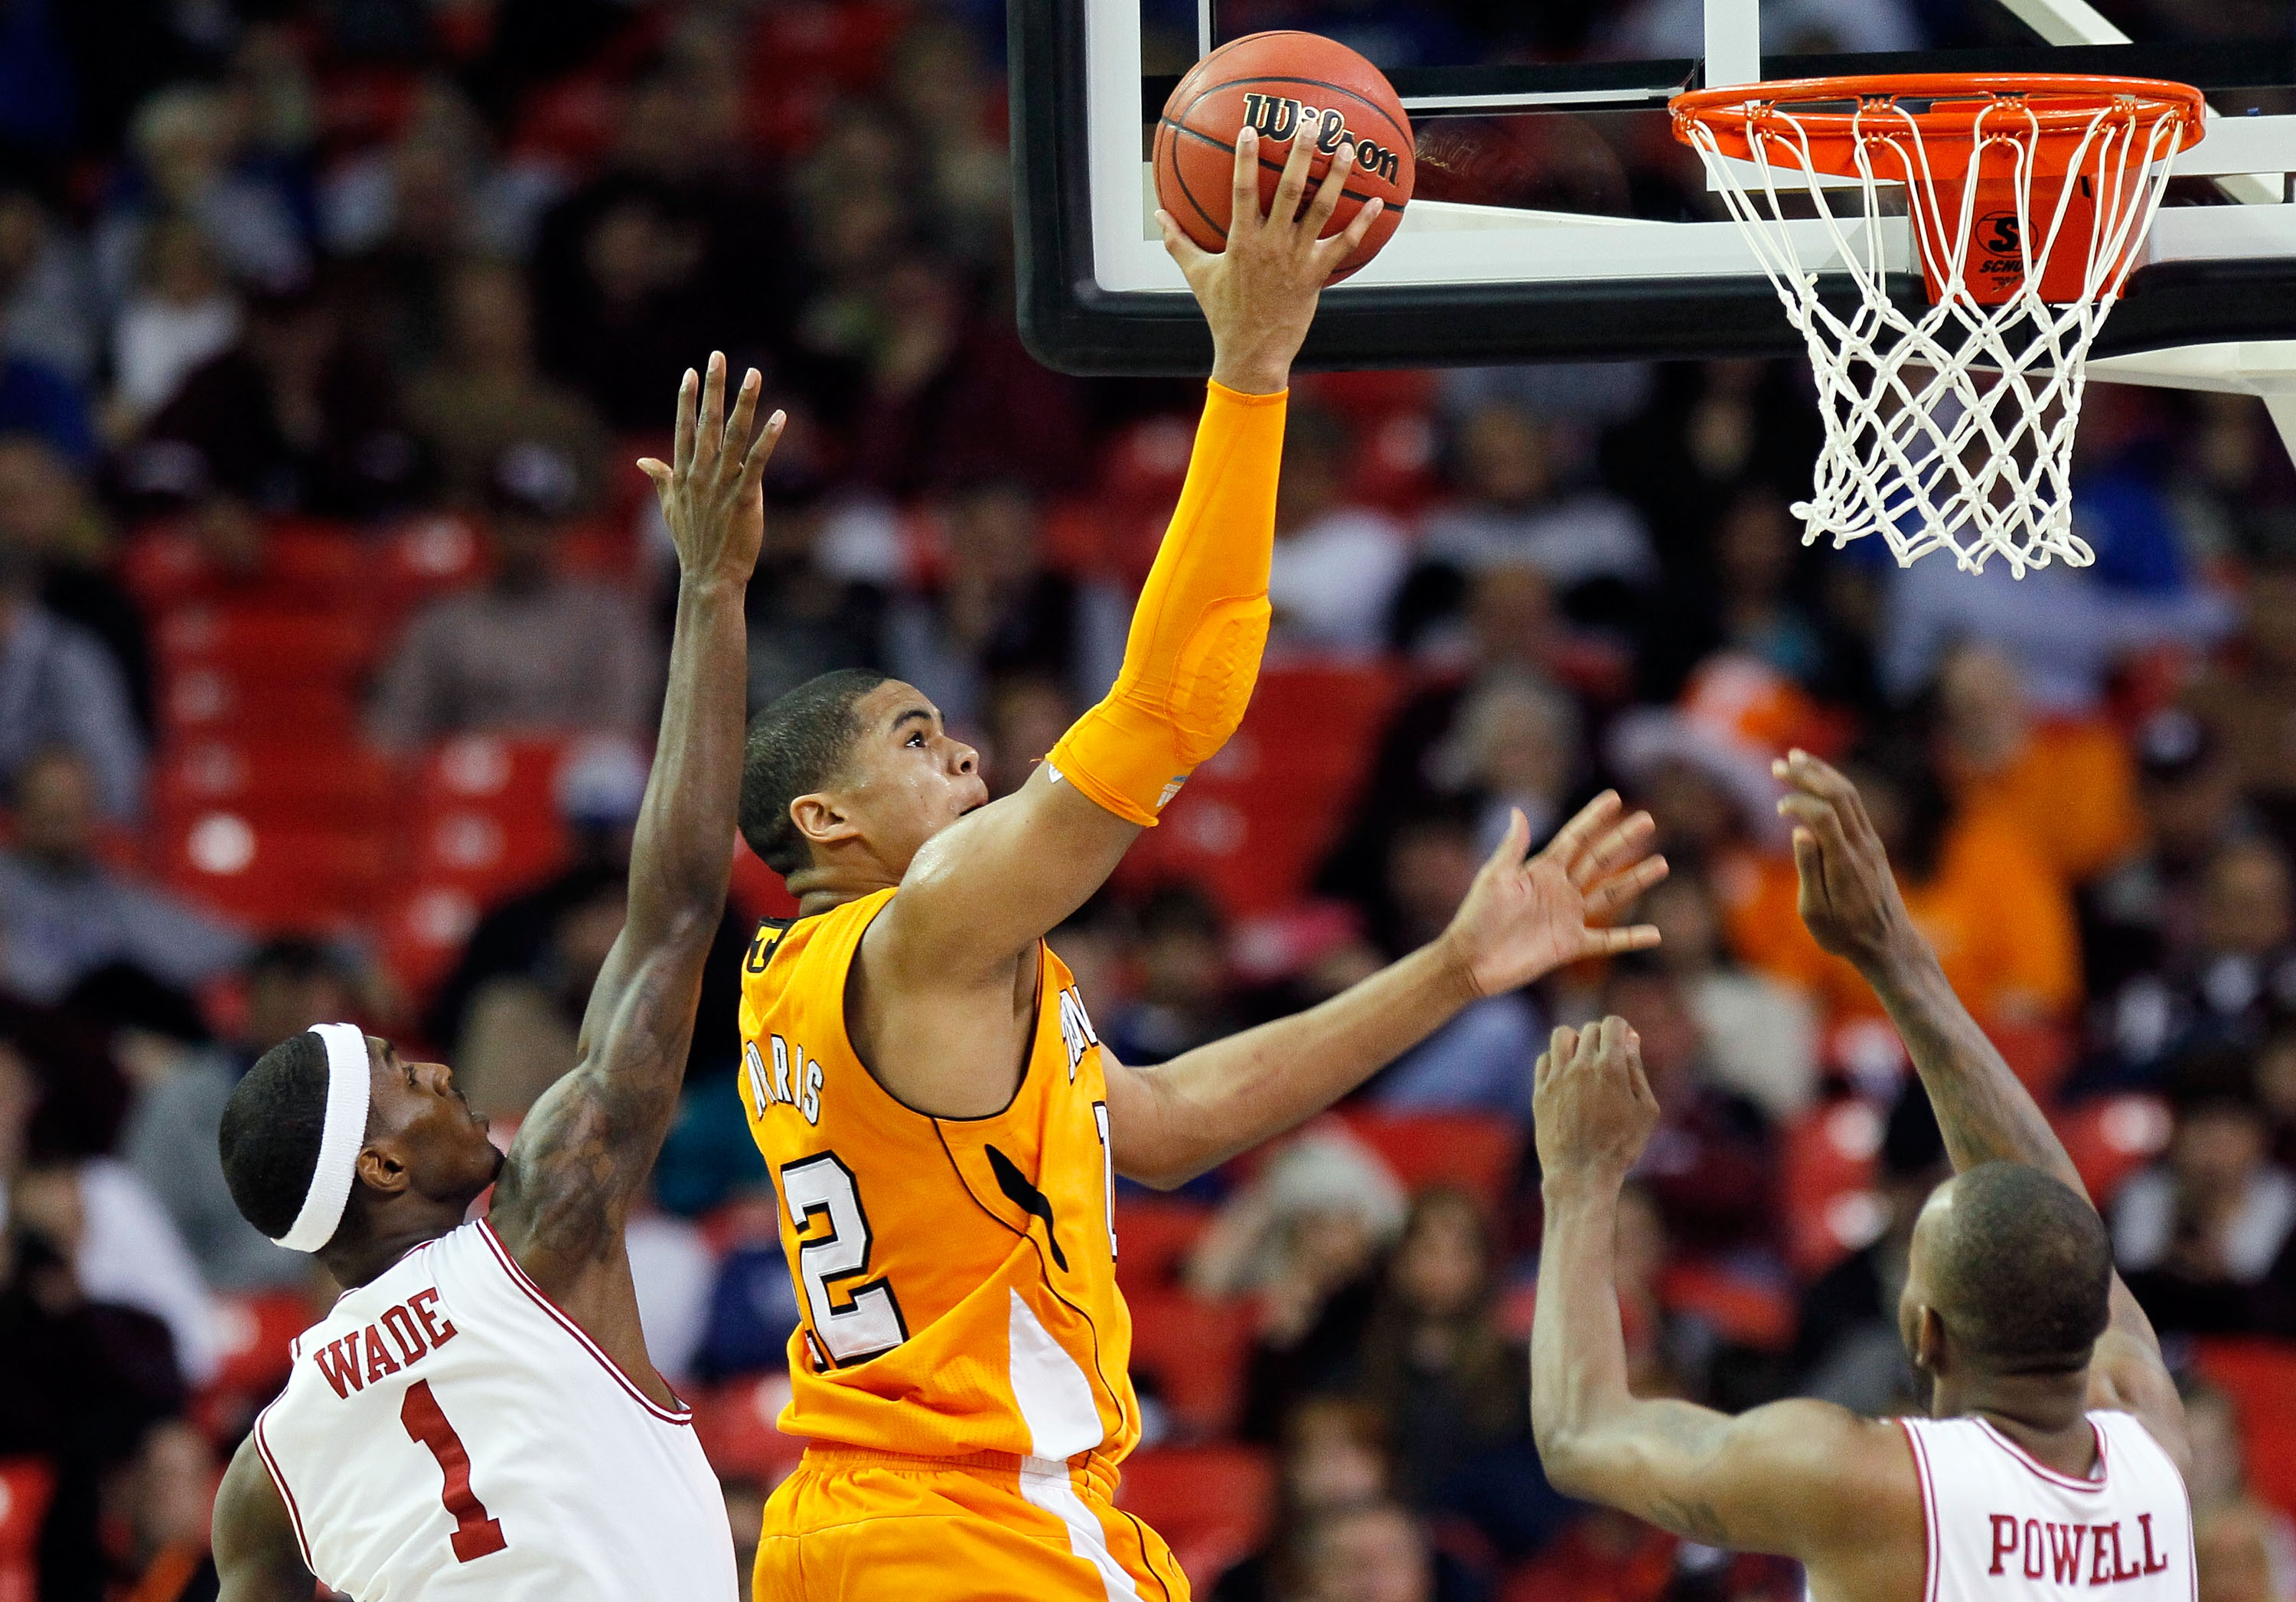 ATLANTA, GA - MARCH 10:  Tobias Harris #12 of the Tennessee Volunteers shoots over Marshawn Powell #33 and Mardracus Wade #1 of the Arkansas Razorbacks during the first round of the SEC Men's Basketball Tournament at the Georgia Dome on March 10, 2011 in